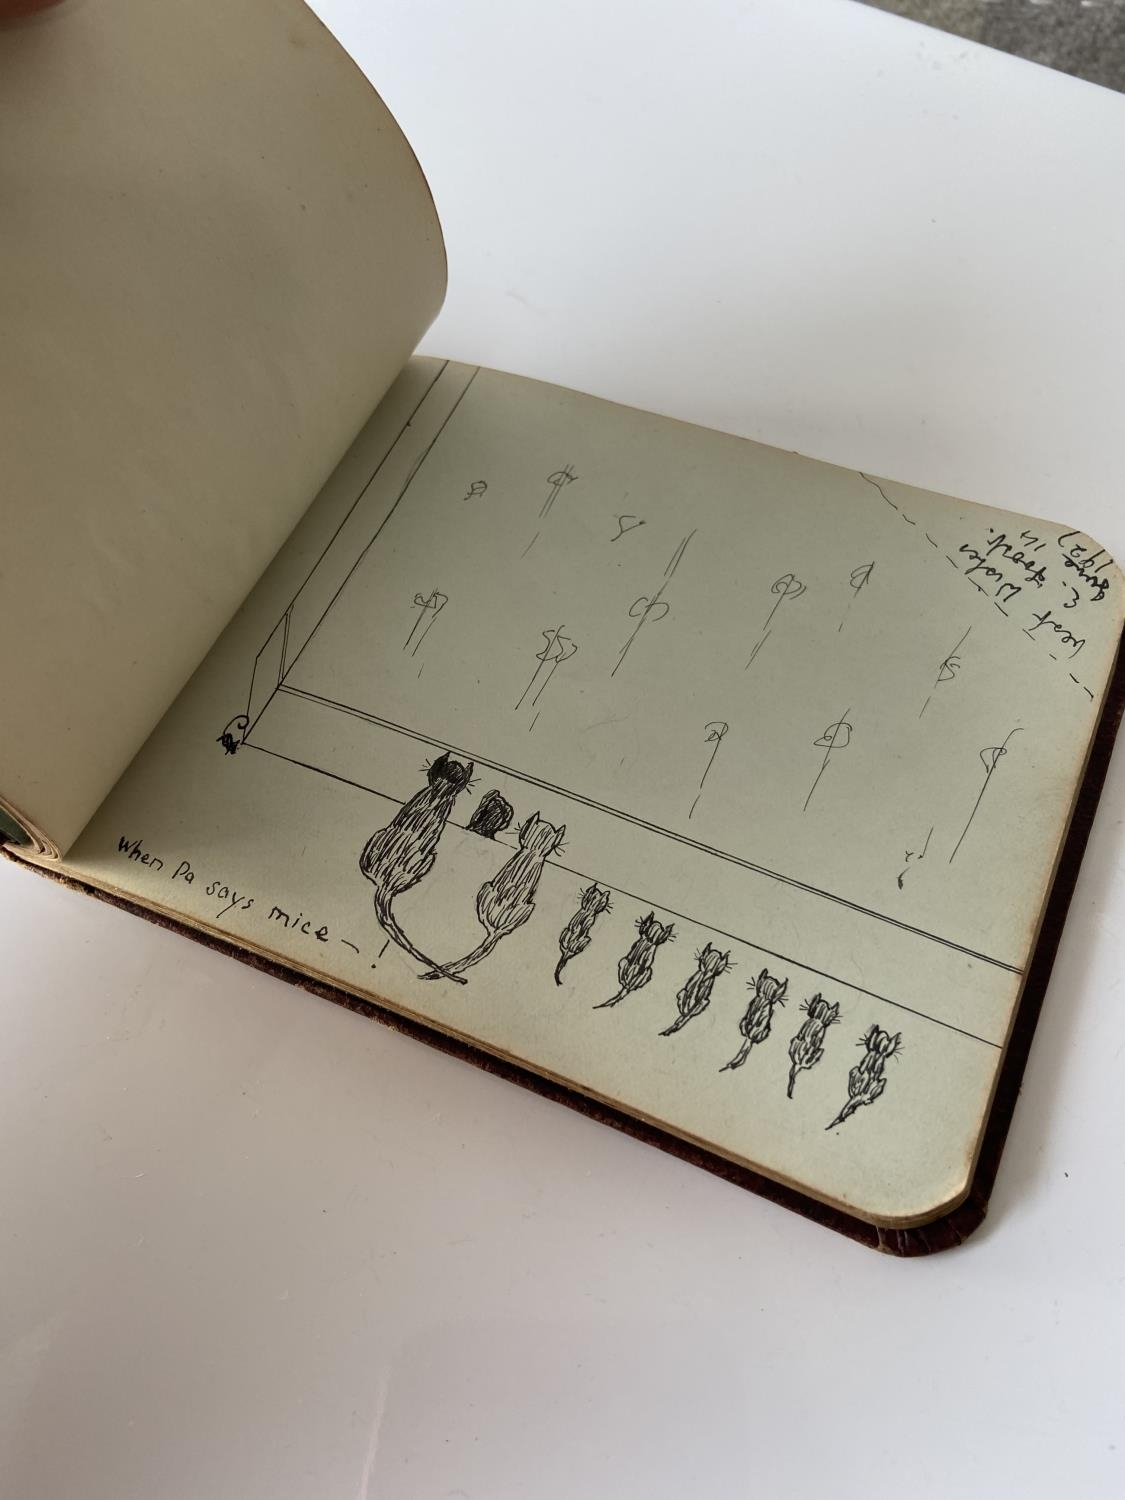 An old autograph album containing various poems, sayings & doodles - Image 11 of 18